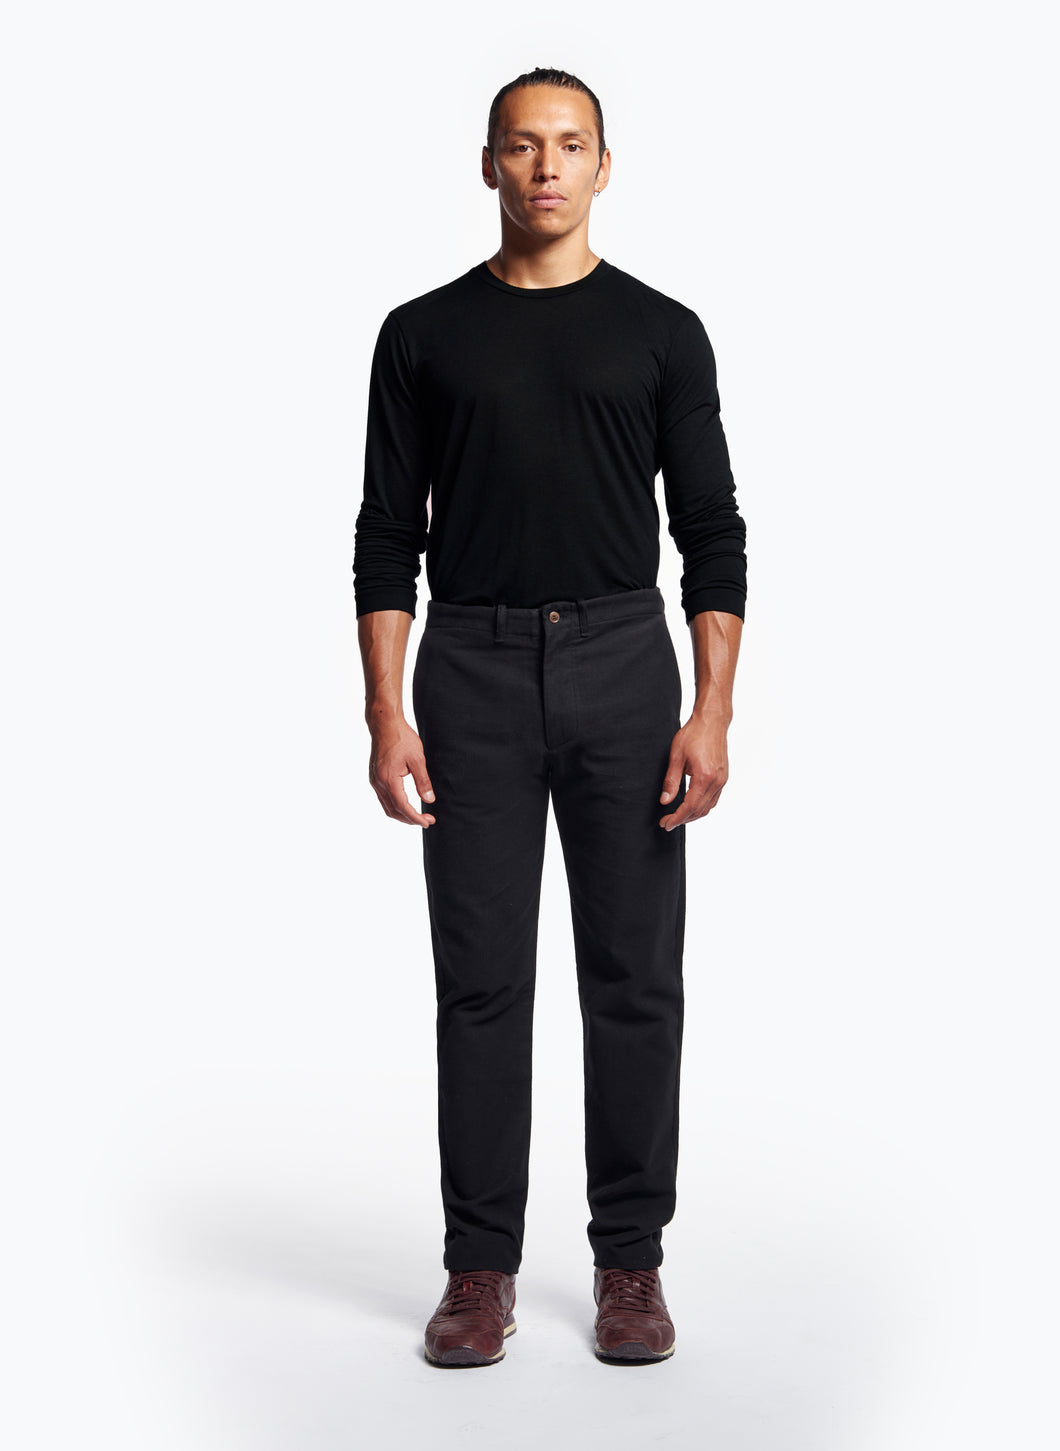 Pants with Italian Pockets in Black Moleskin